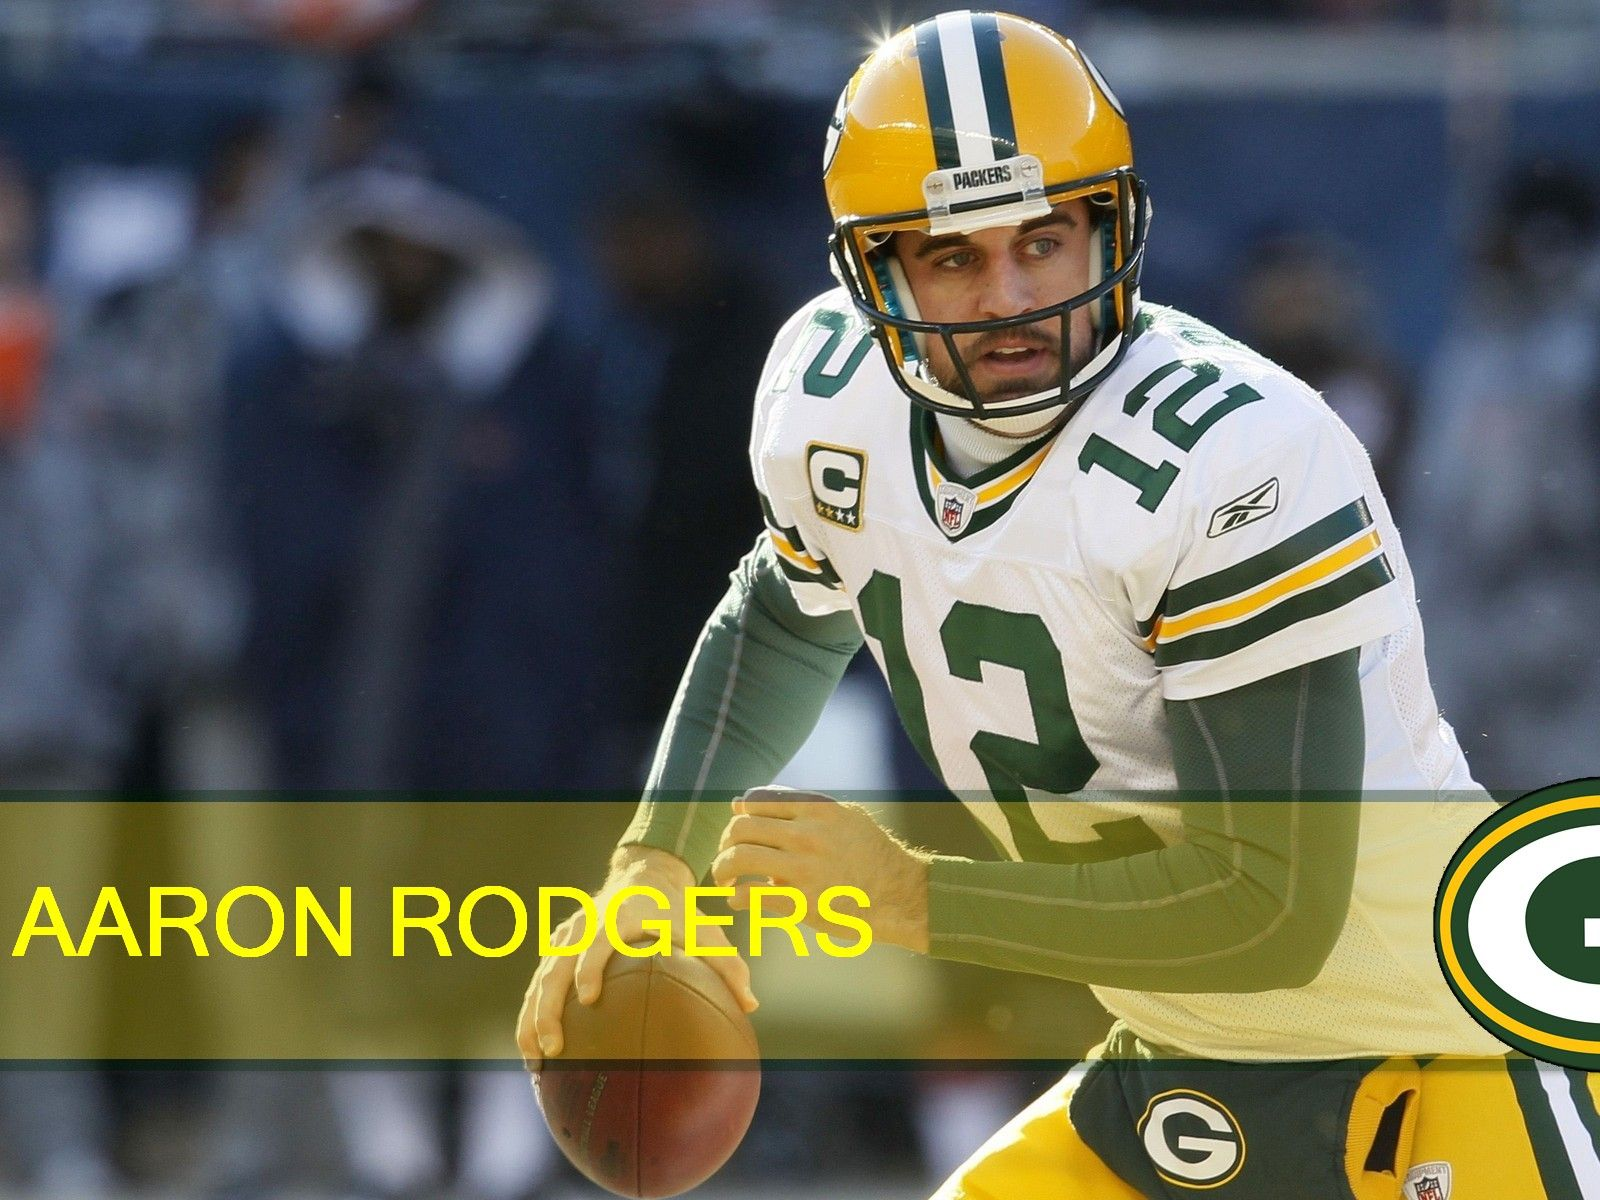 Nfl Packersns Nfl Green Bay Packers Qb Aaron Rodgers 1600x1200 Desktop Nfl Green Aaron Rodgers Packers Green Bay Packers Logo